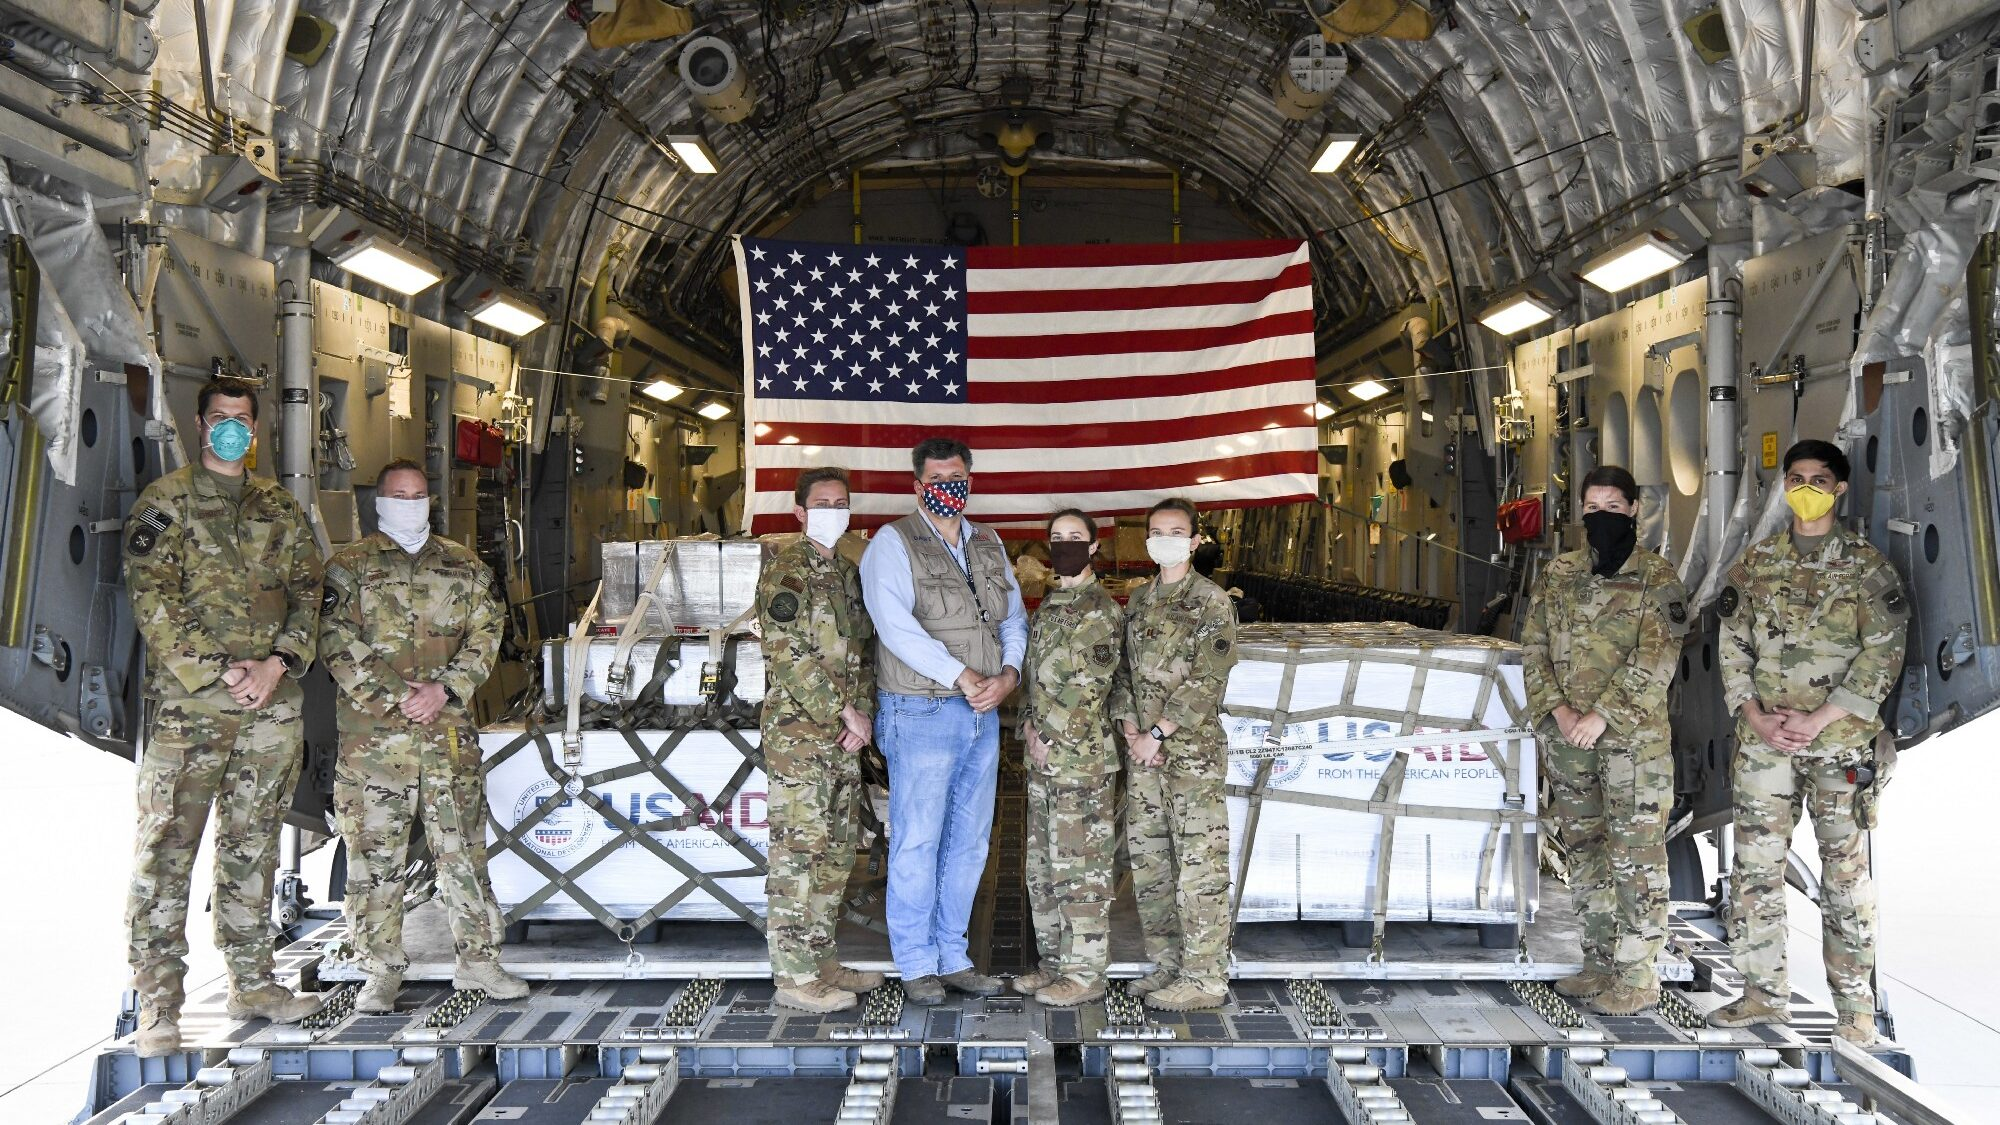 U.S. Air Force aircrew and USAID Assistant Administrator Brock Bierman in front of ventilators on their way Moscow in May as part of the U.S. Government's global response to the coronavirus pandemic. / Christopher Quail, U.S. Air Force